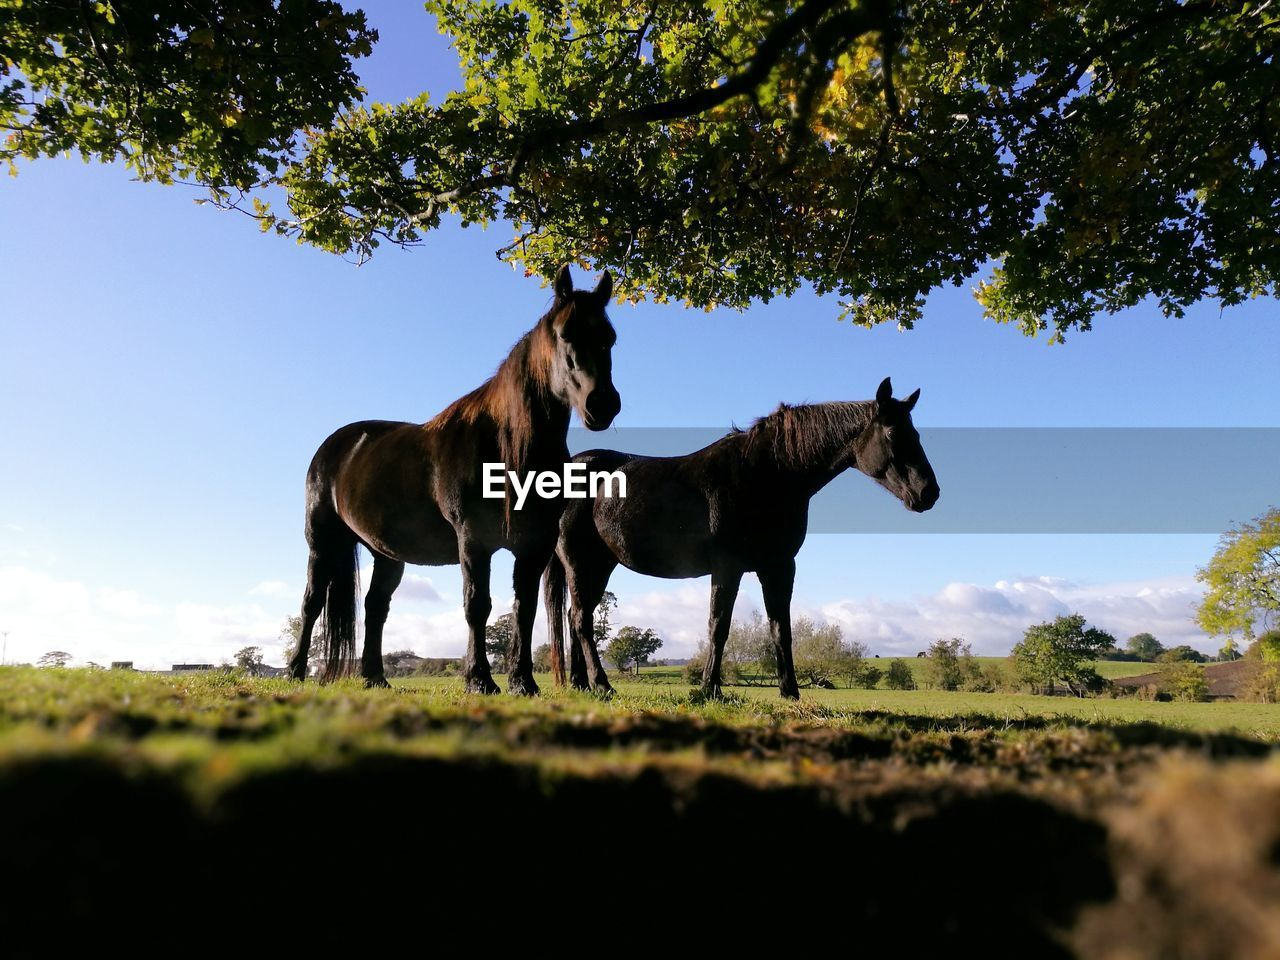 Horses standing on field against clear blue sky